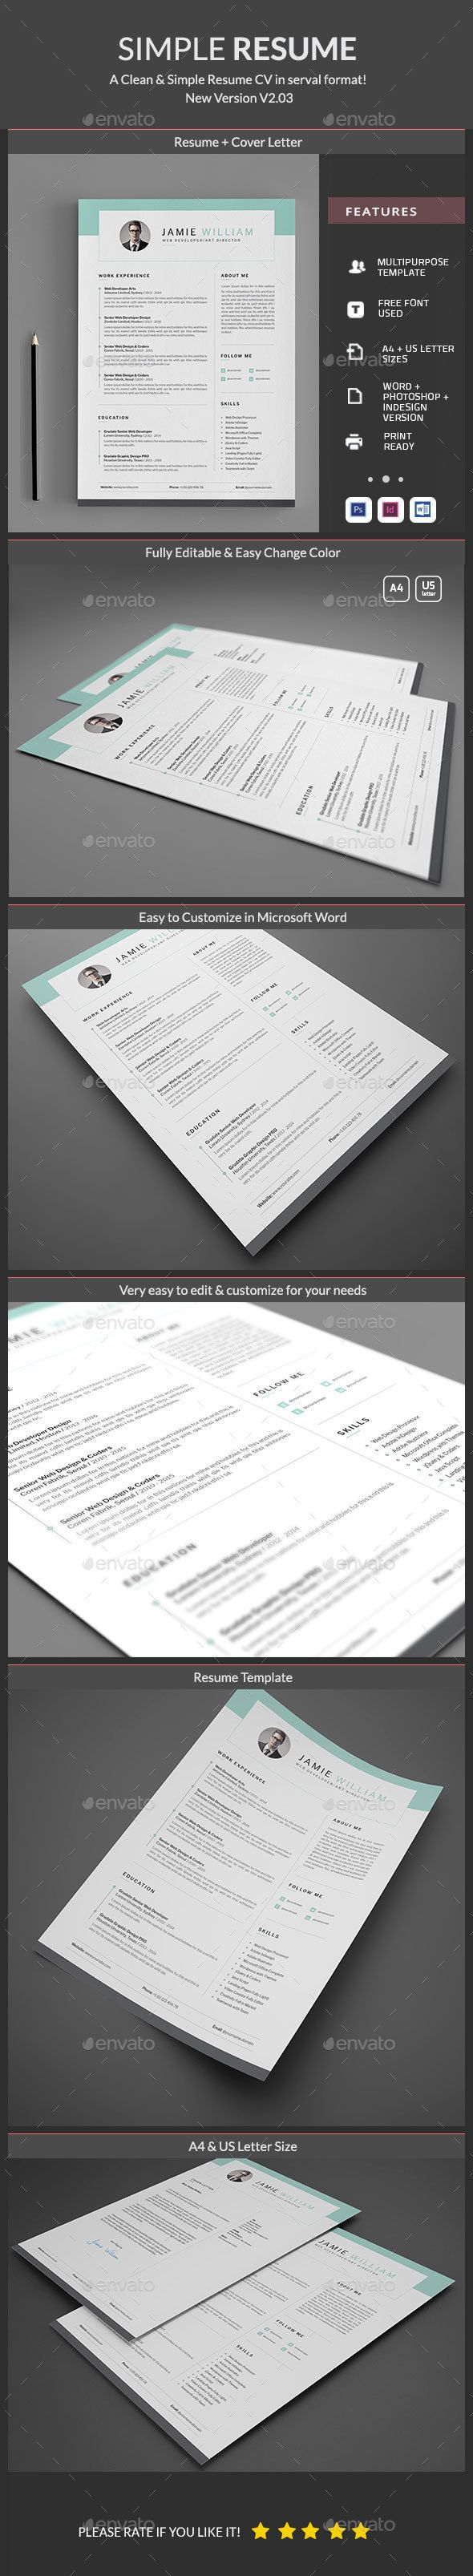 Resume Text Size Pincareer Bureau On Resume  Pinterest  Template Resume Cover .